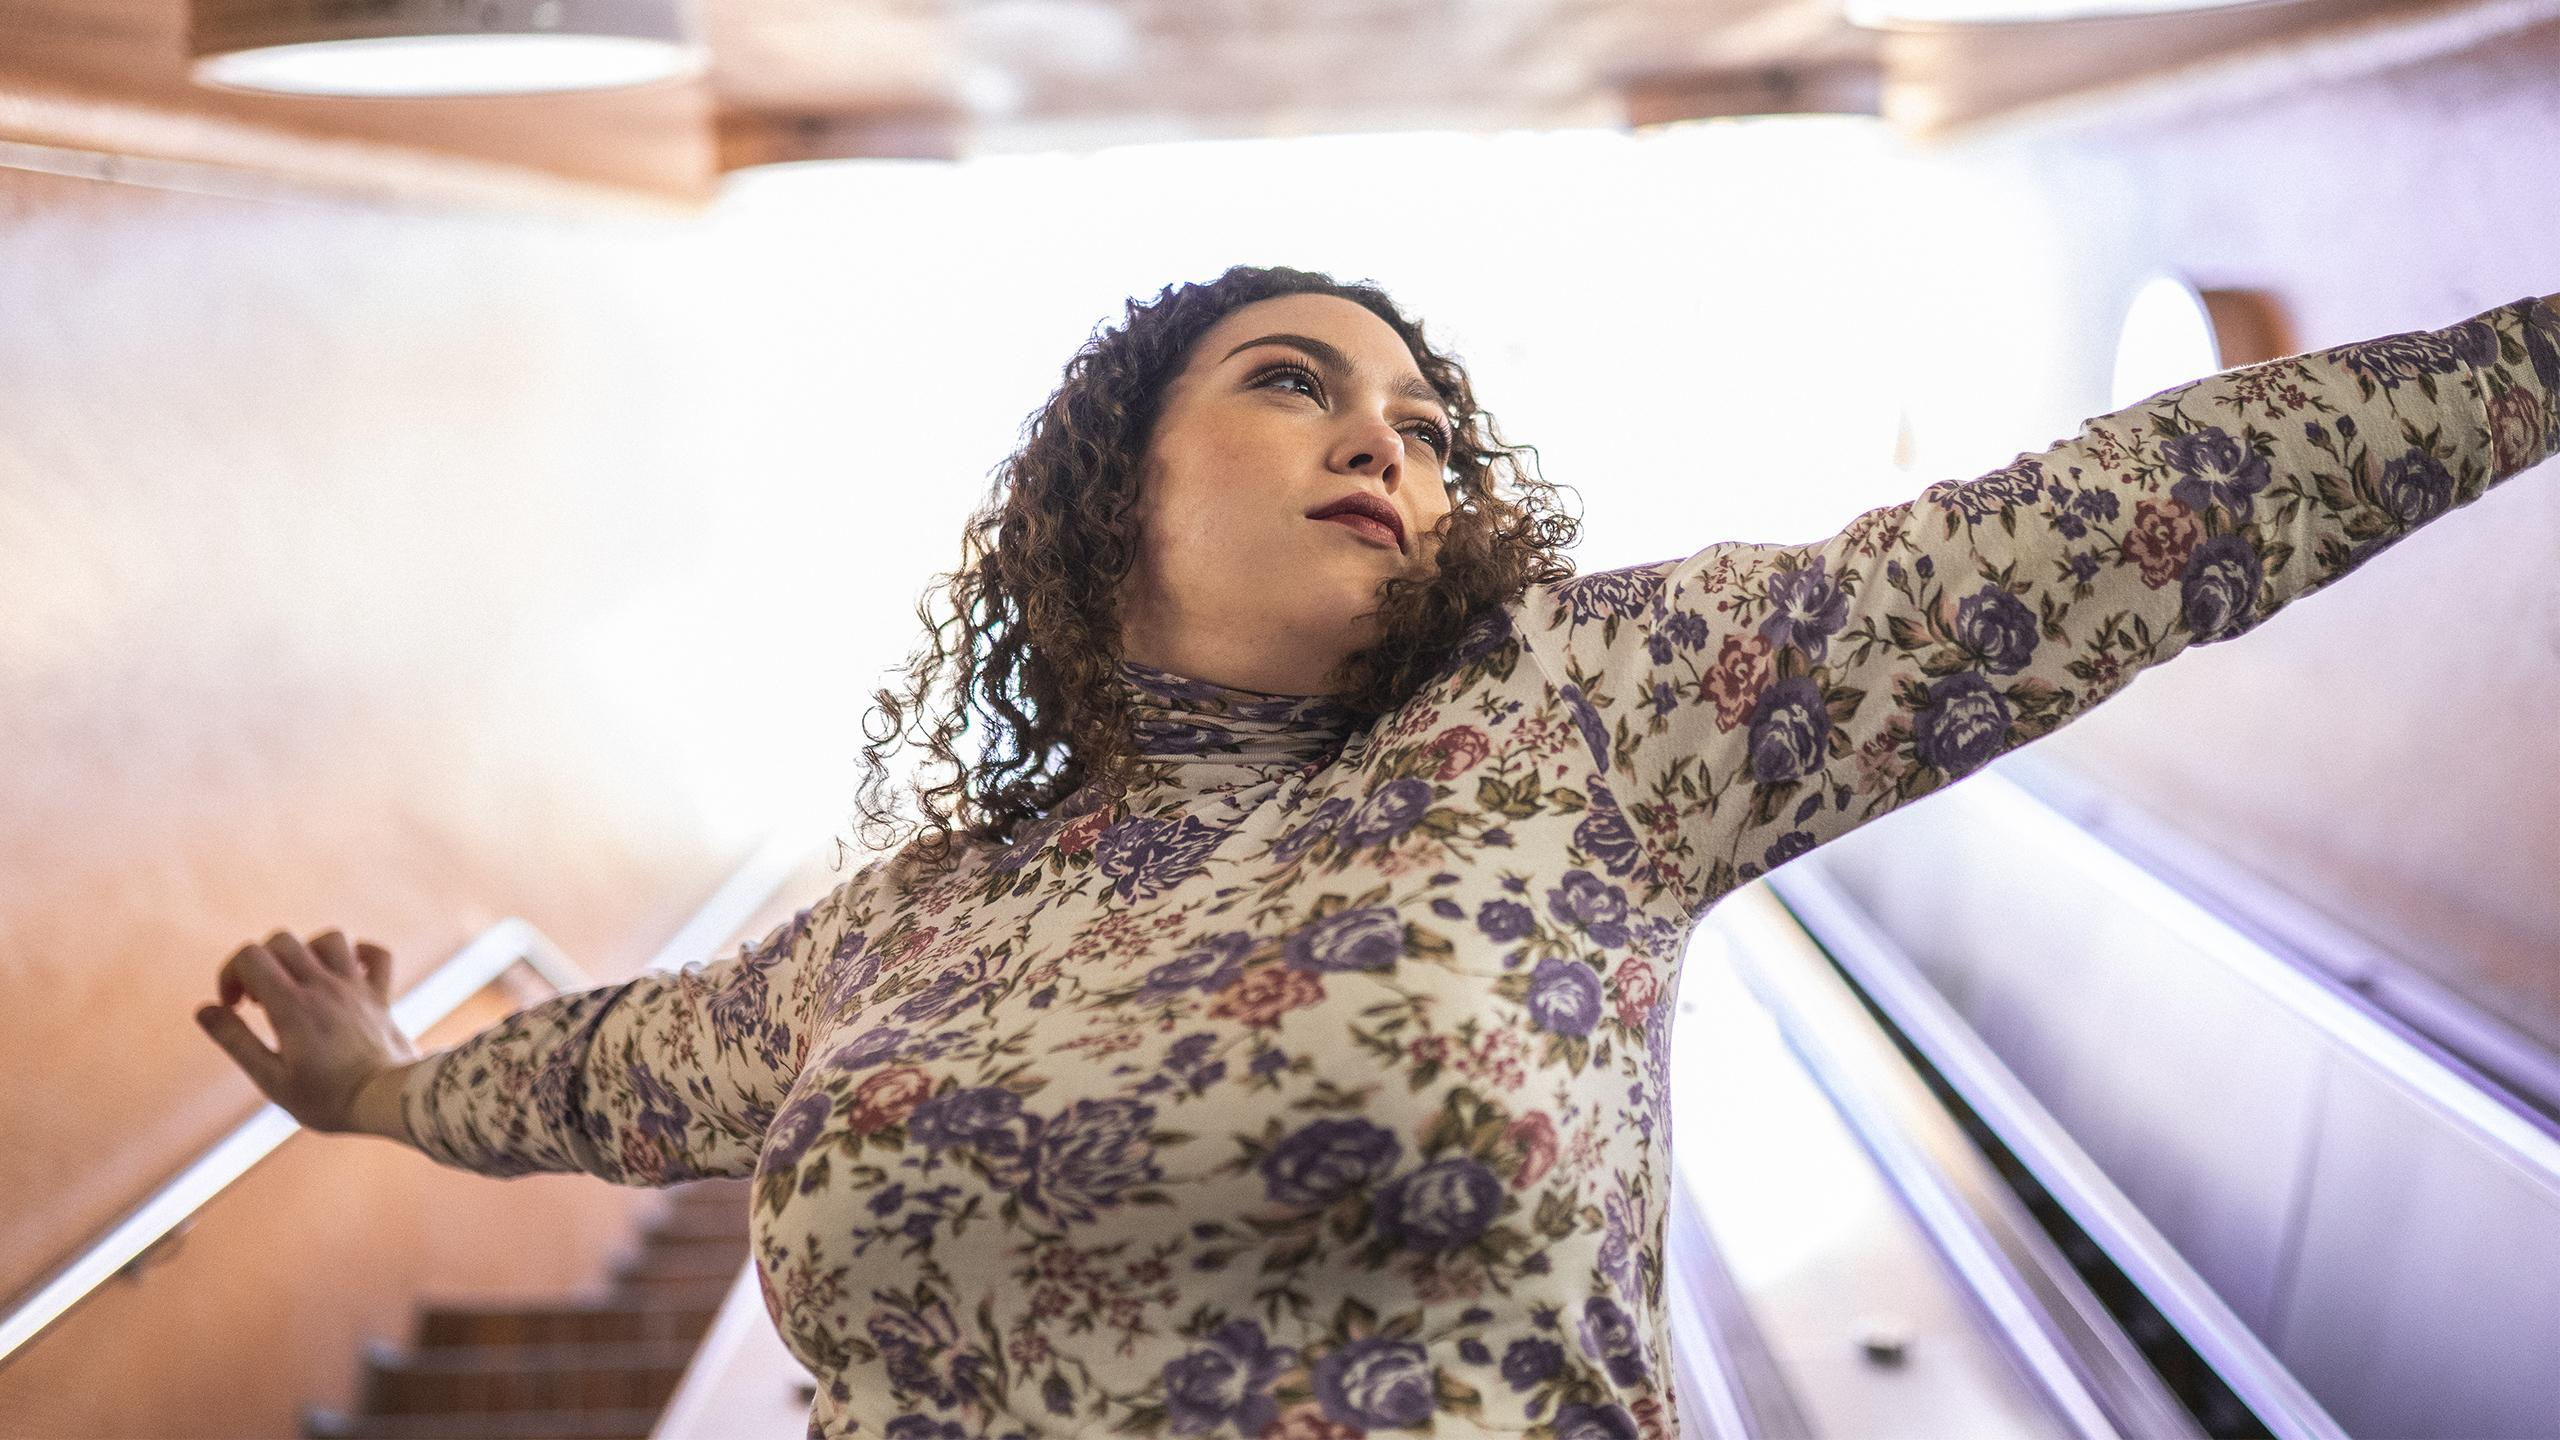 A picture of a plus-sized woman stretching out her arms and looking off camera